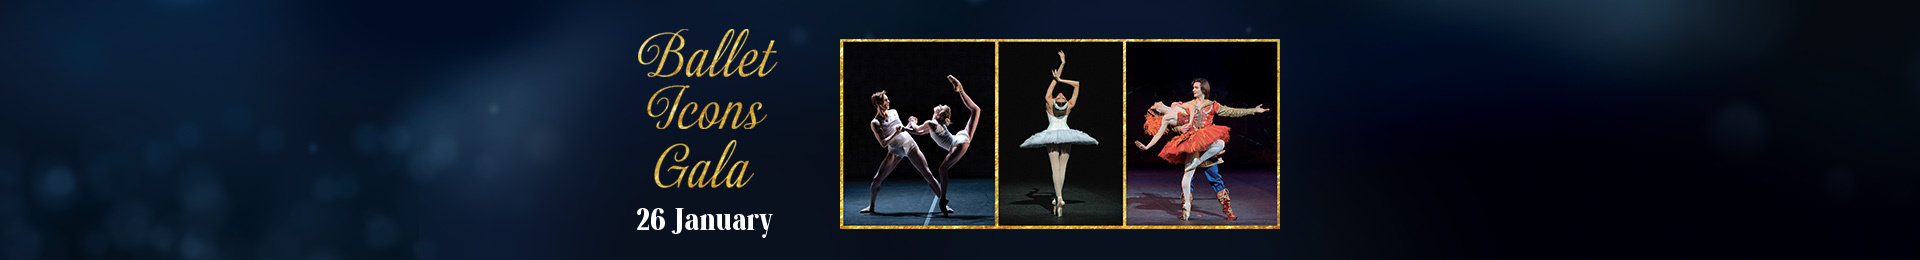 The Ballet Icons Gala banner image